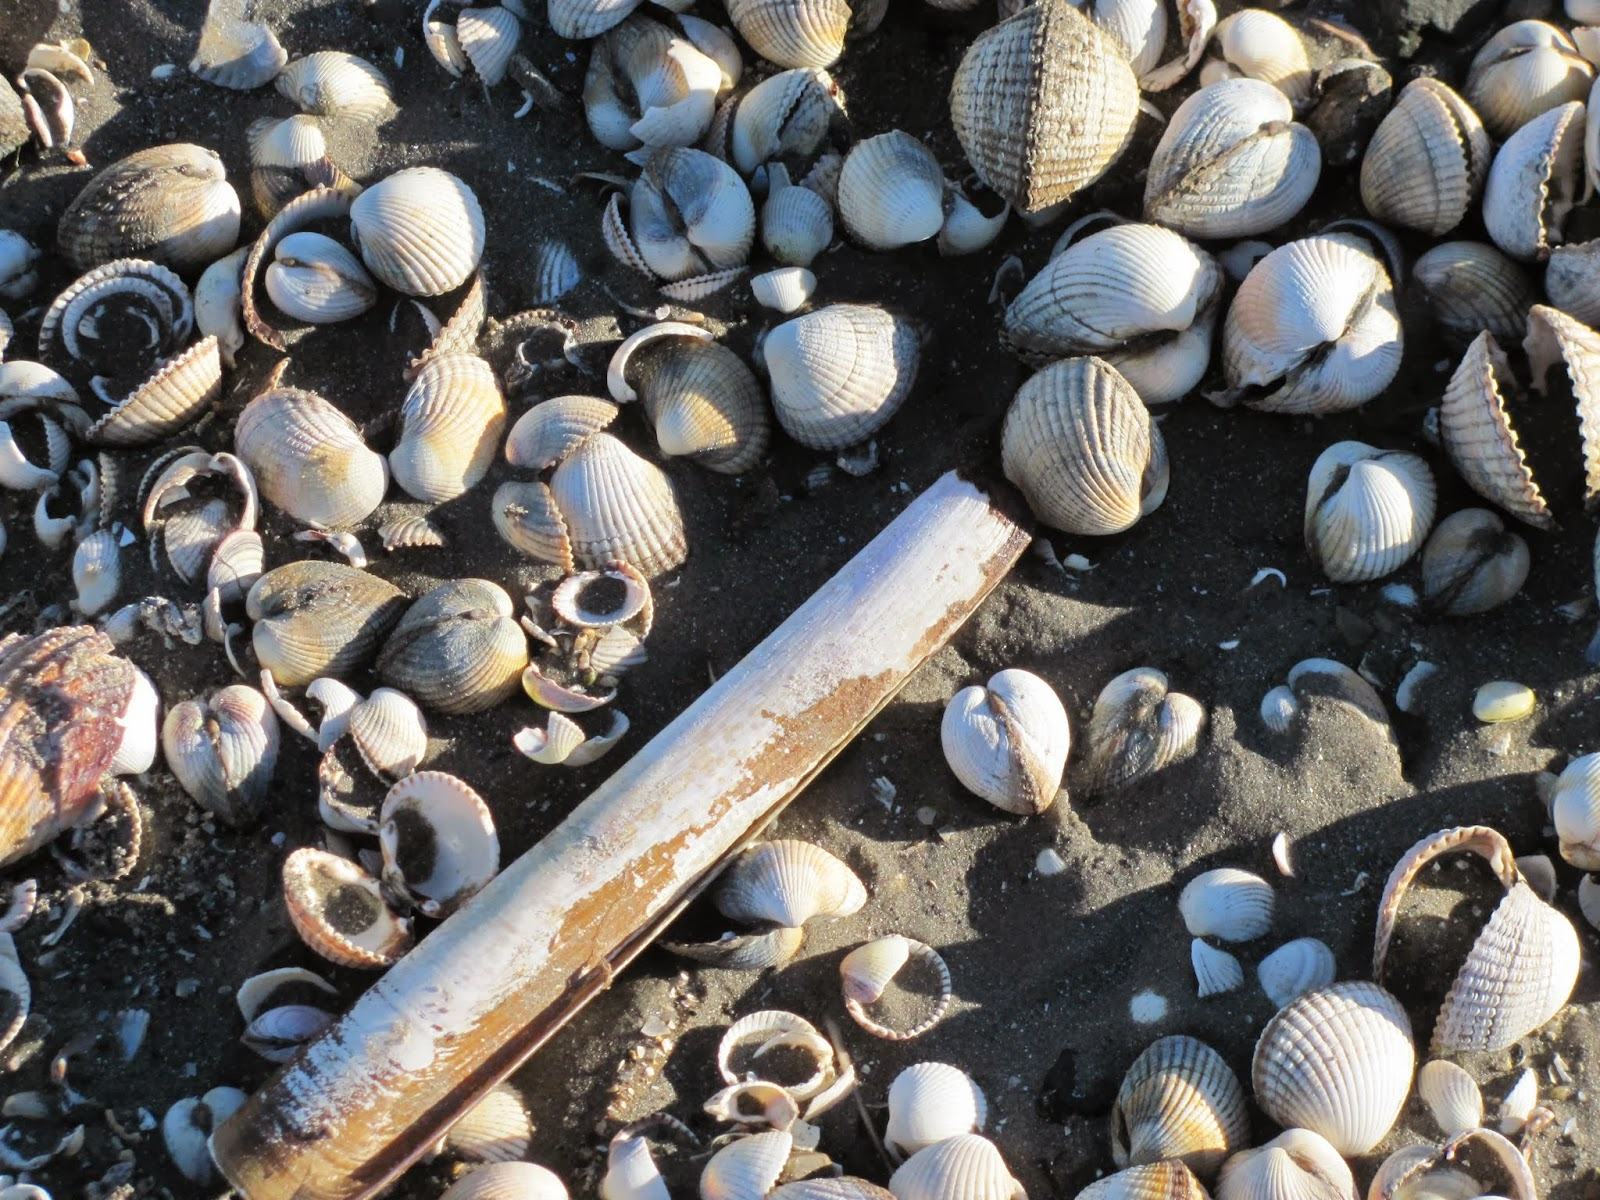 Shells at Sandymount Strand in Dublin, Ireland